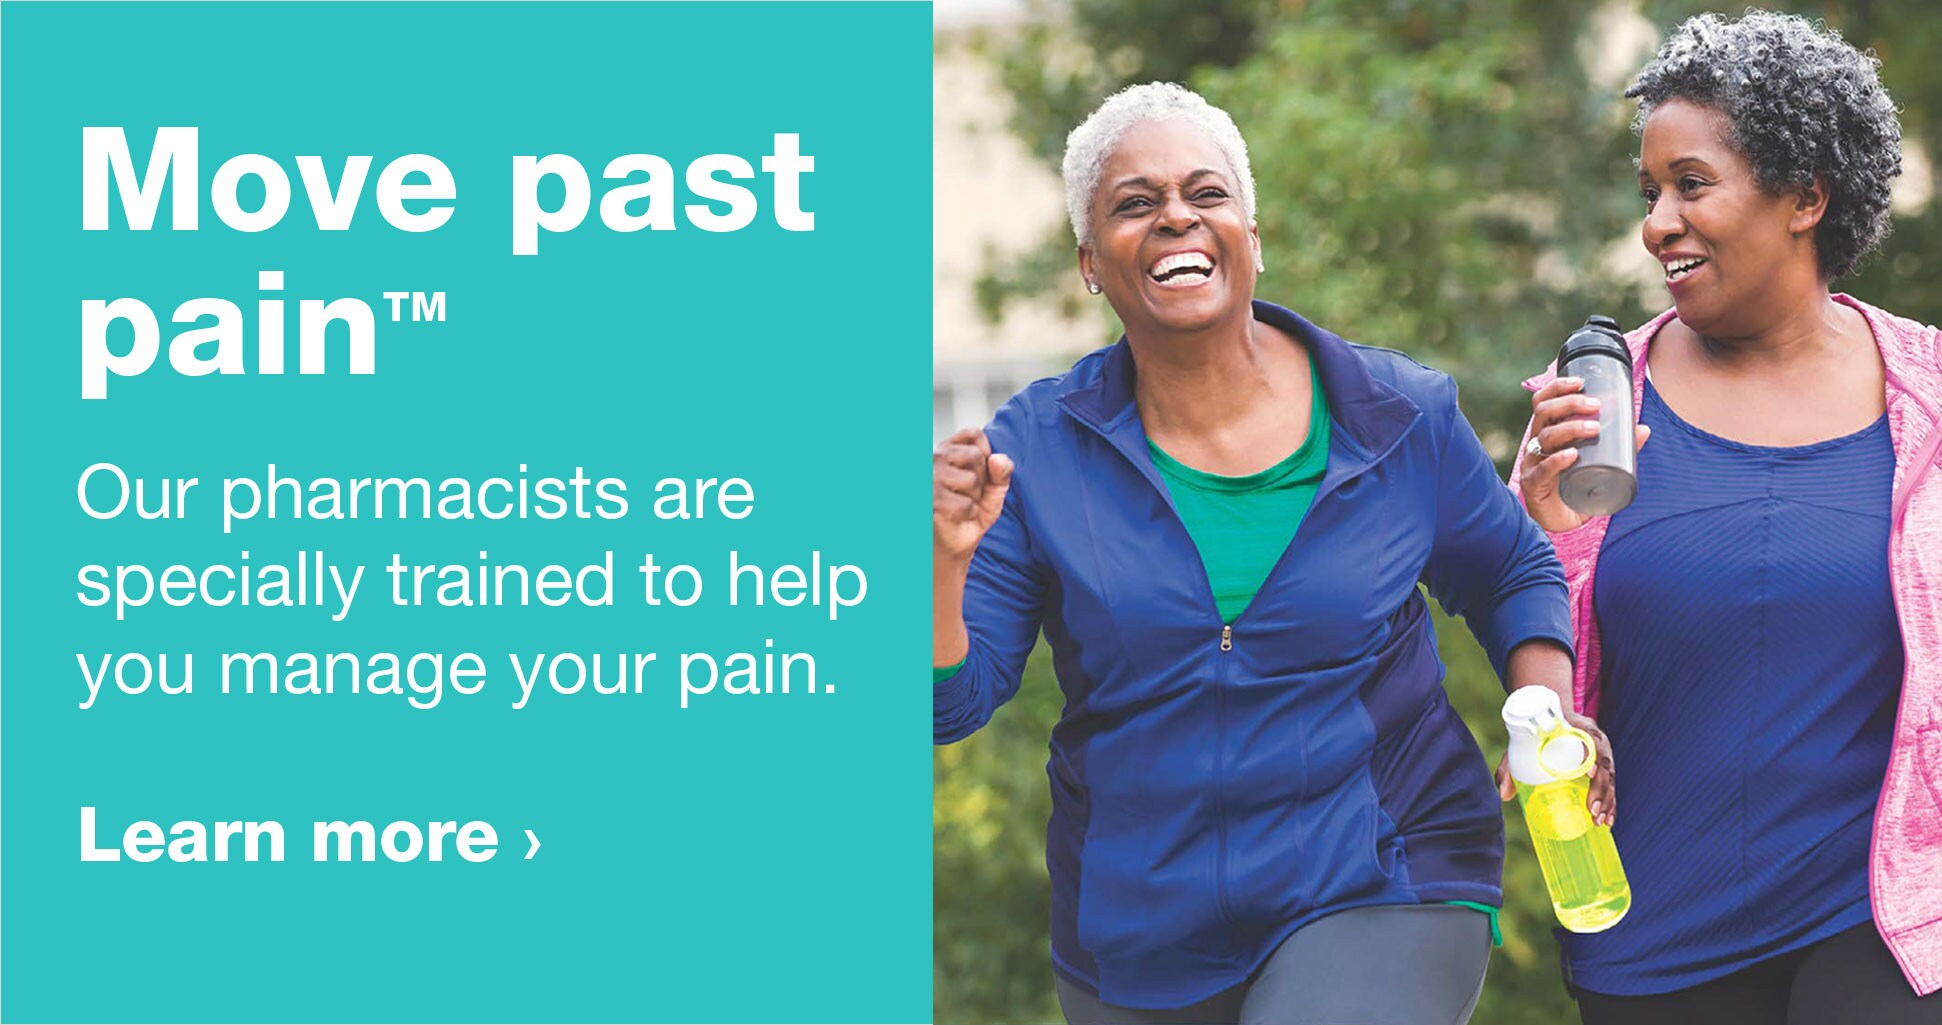 Move past pain.(TM) Our pharmacists are specially trained to help you manage your pain. Learn more.